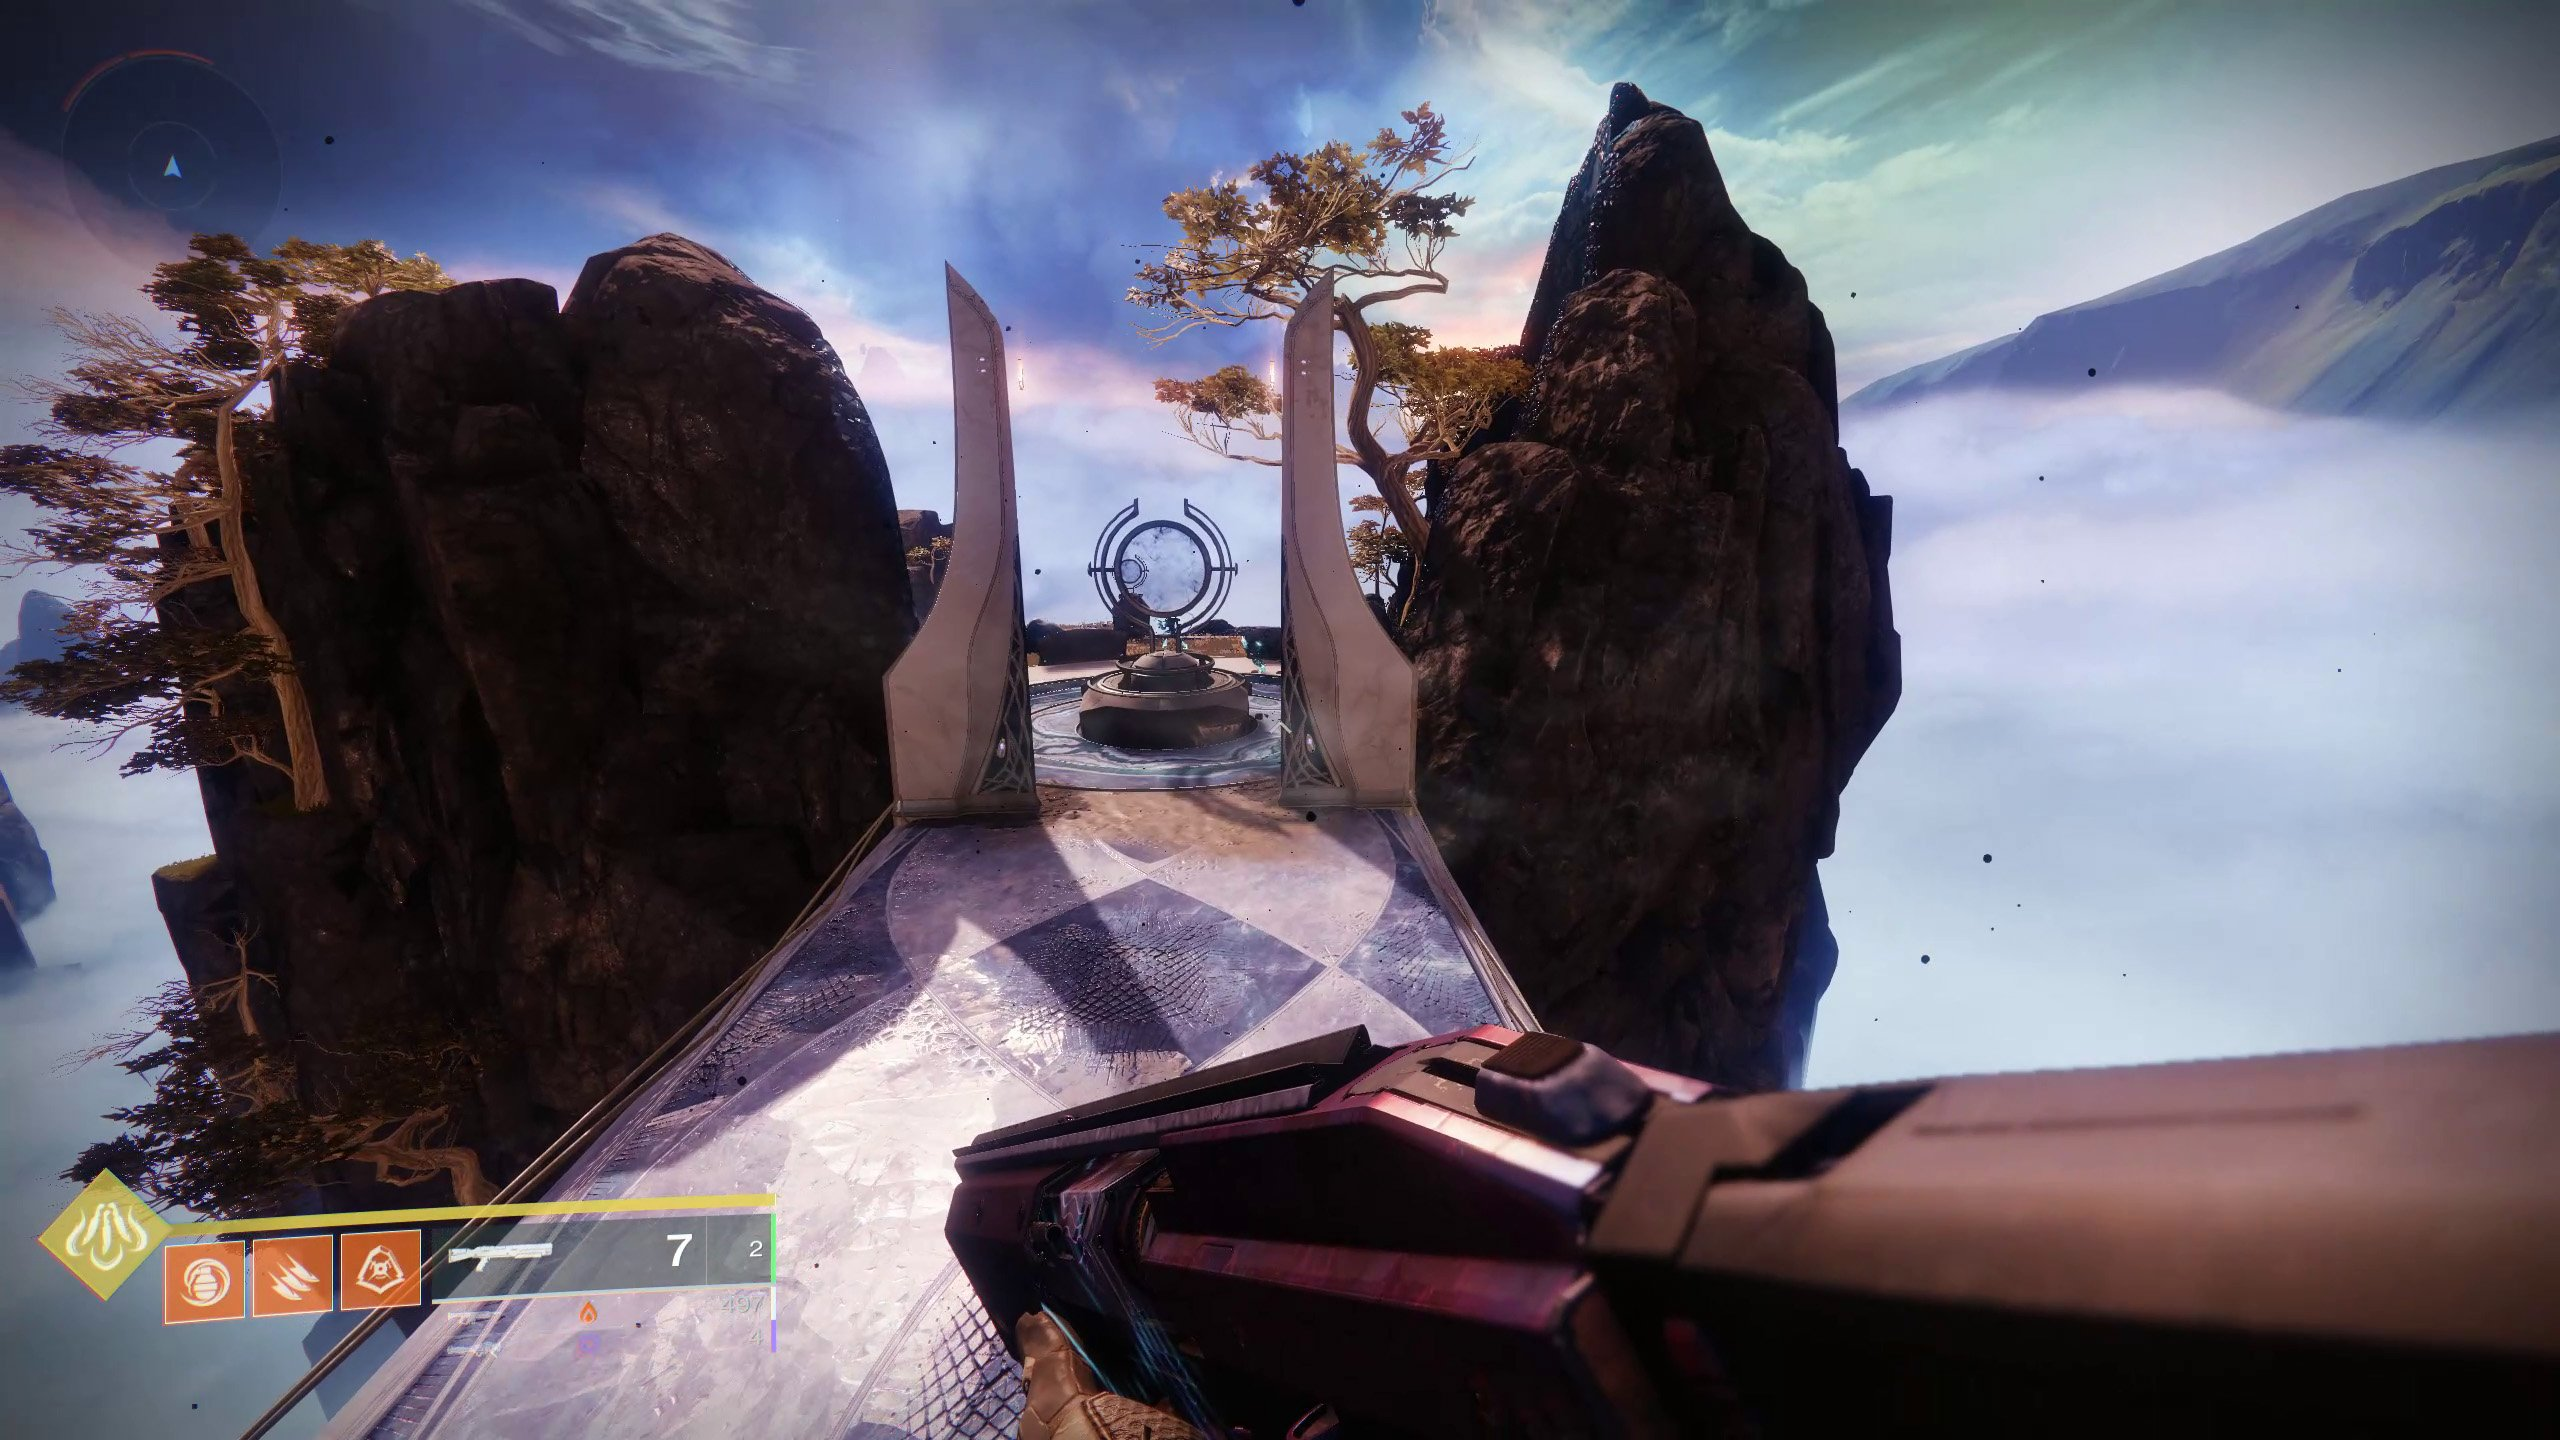 Destiny 2 Spine of Keres Imperial Treasure location